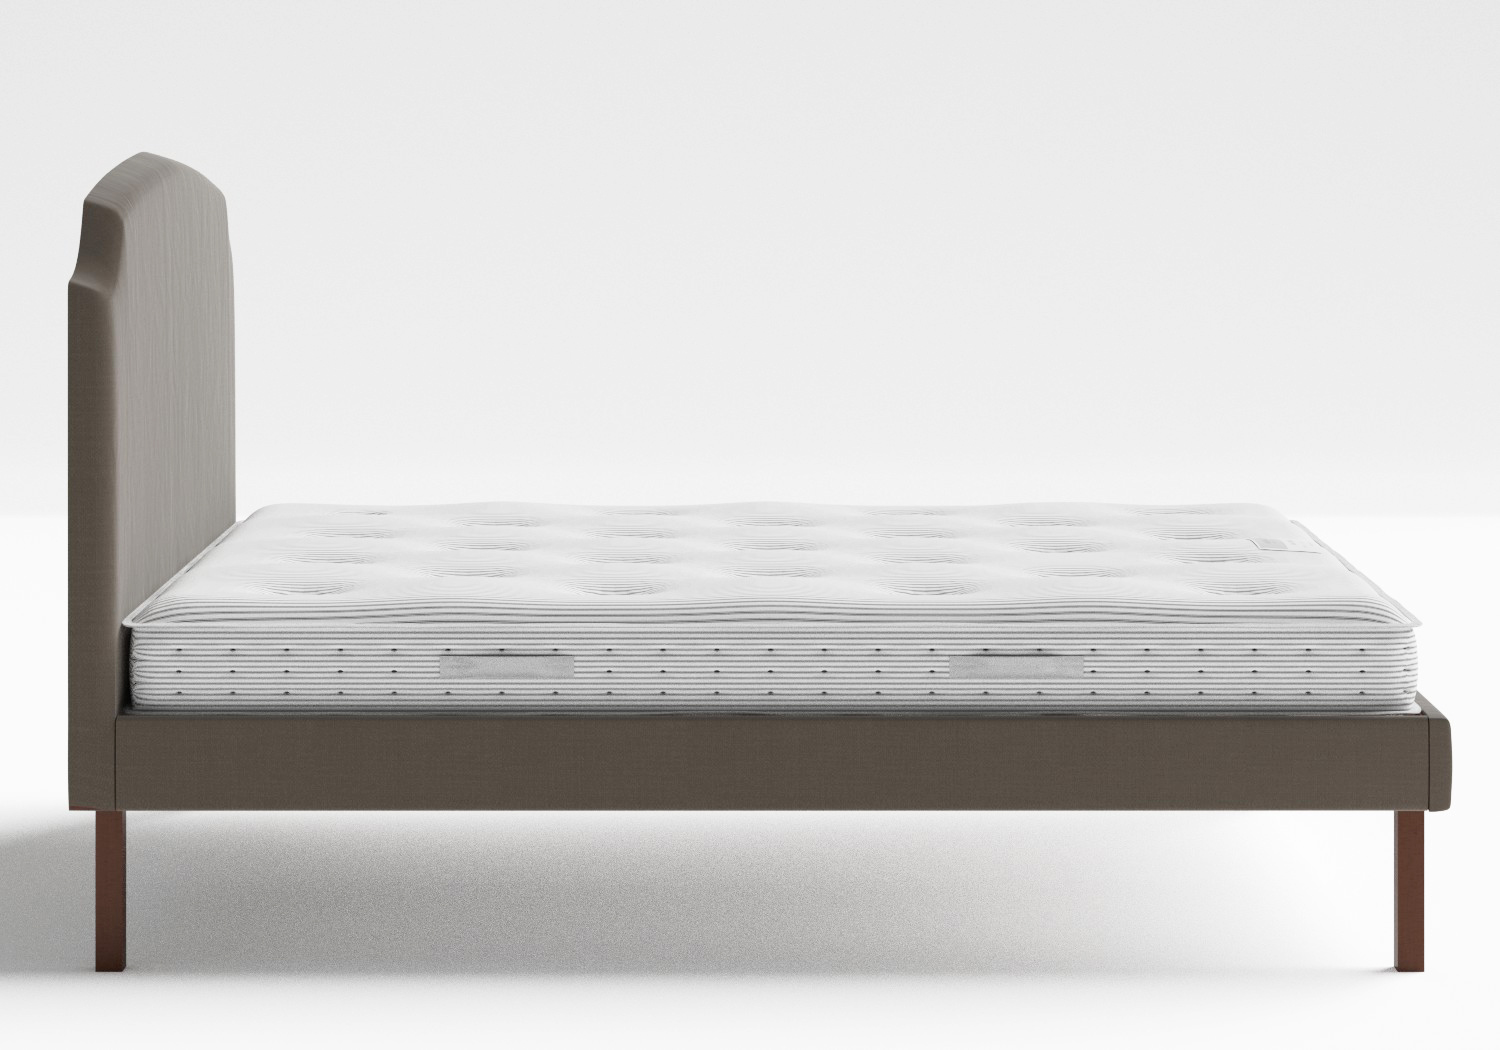 Kobe Upholstered Bed in Grey fabric shown with Juno 1 mattress